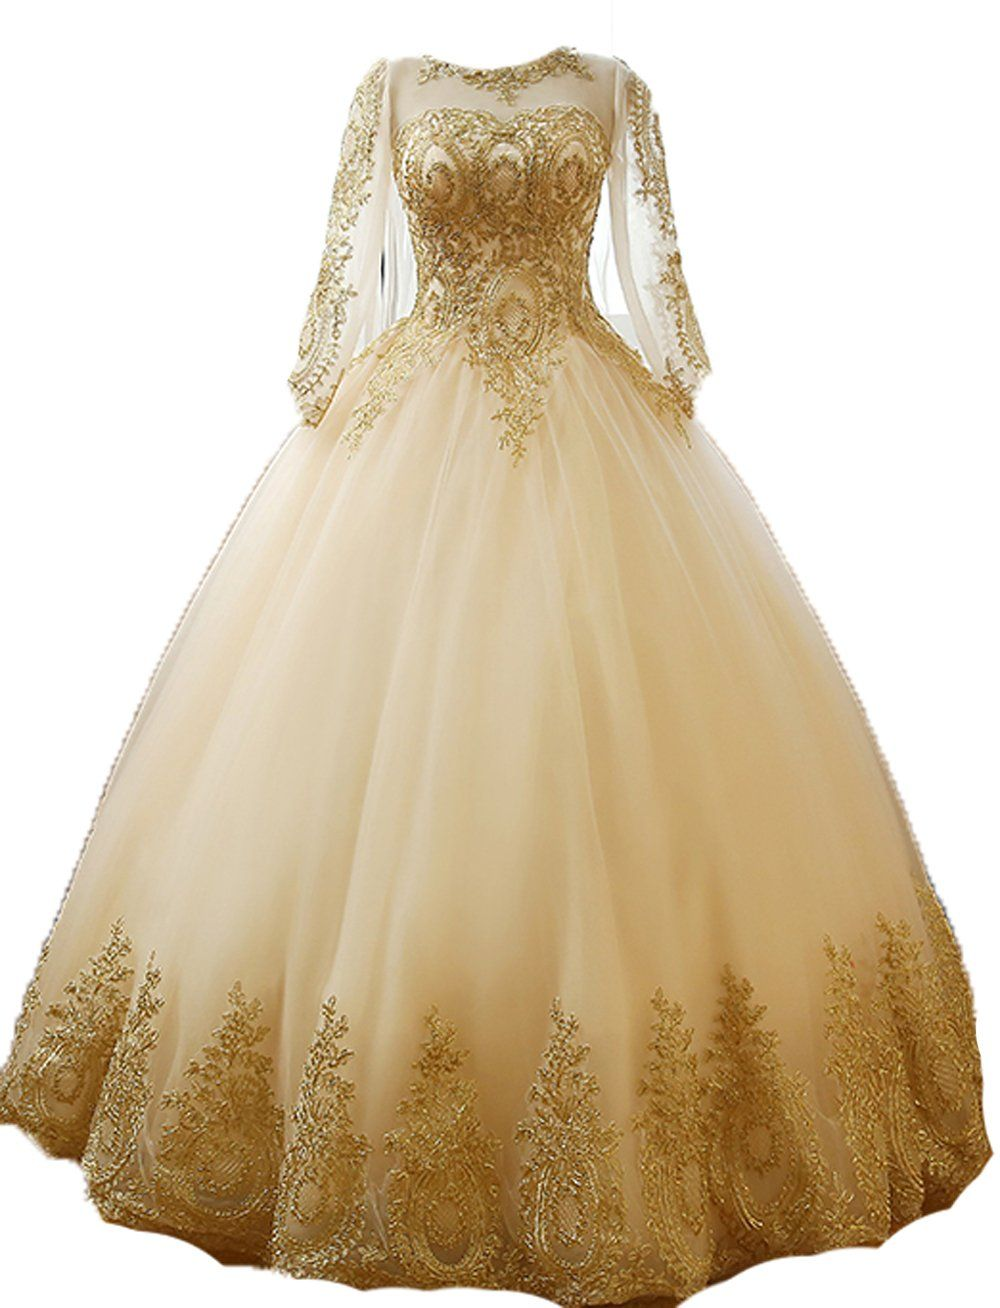 af35c5c3eee BessDress Gold Lace Appplique Quinceanera Dresses Long Sleeves Prom Ball  Gown BD389   For more information